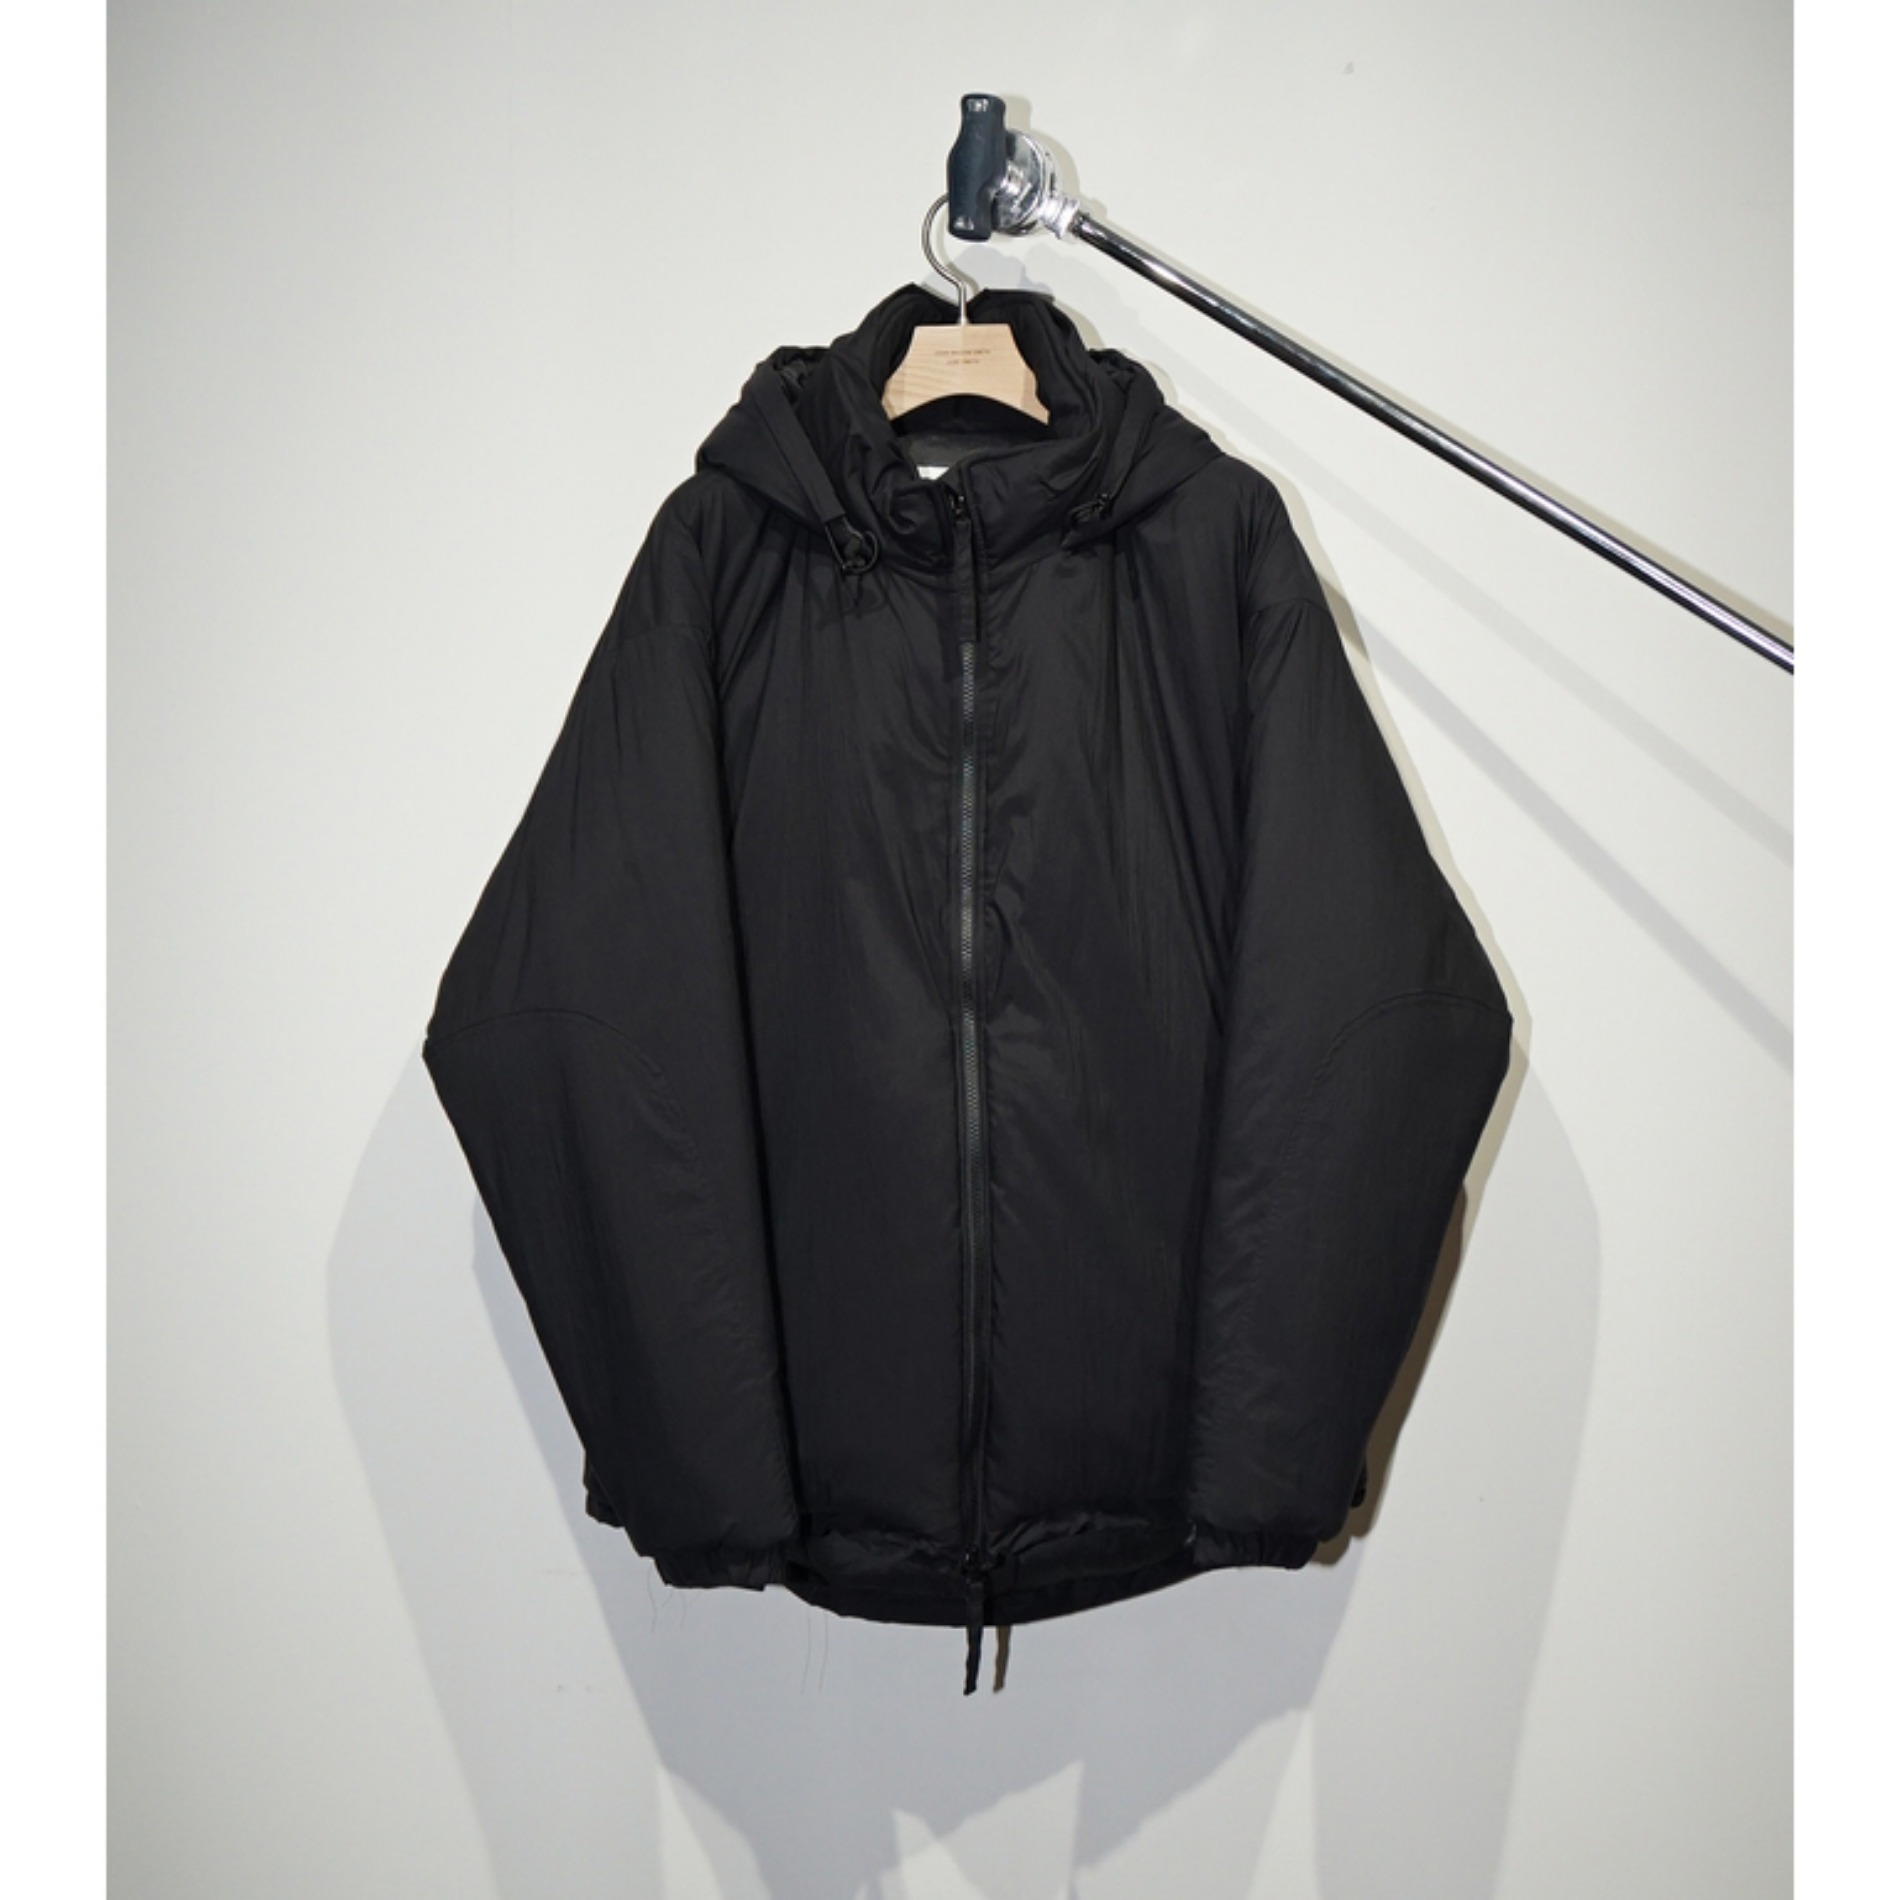 AW20 JOHN MASON SMITH EXTREME COLD WEATHER PARKA BLACK